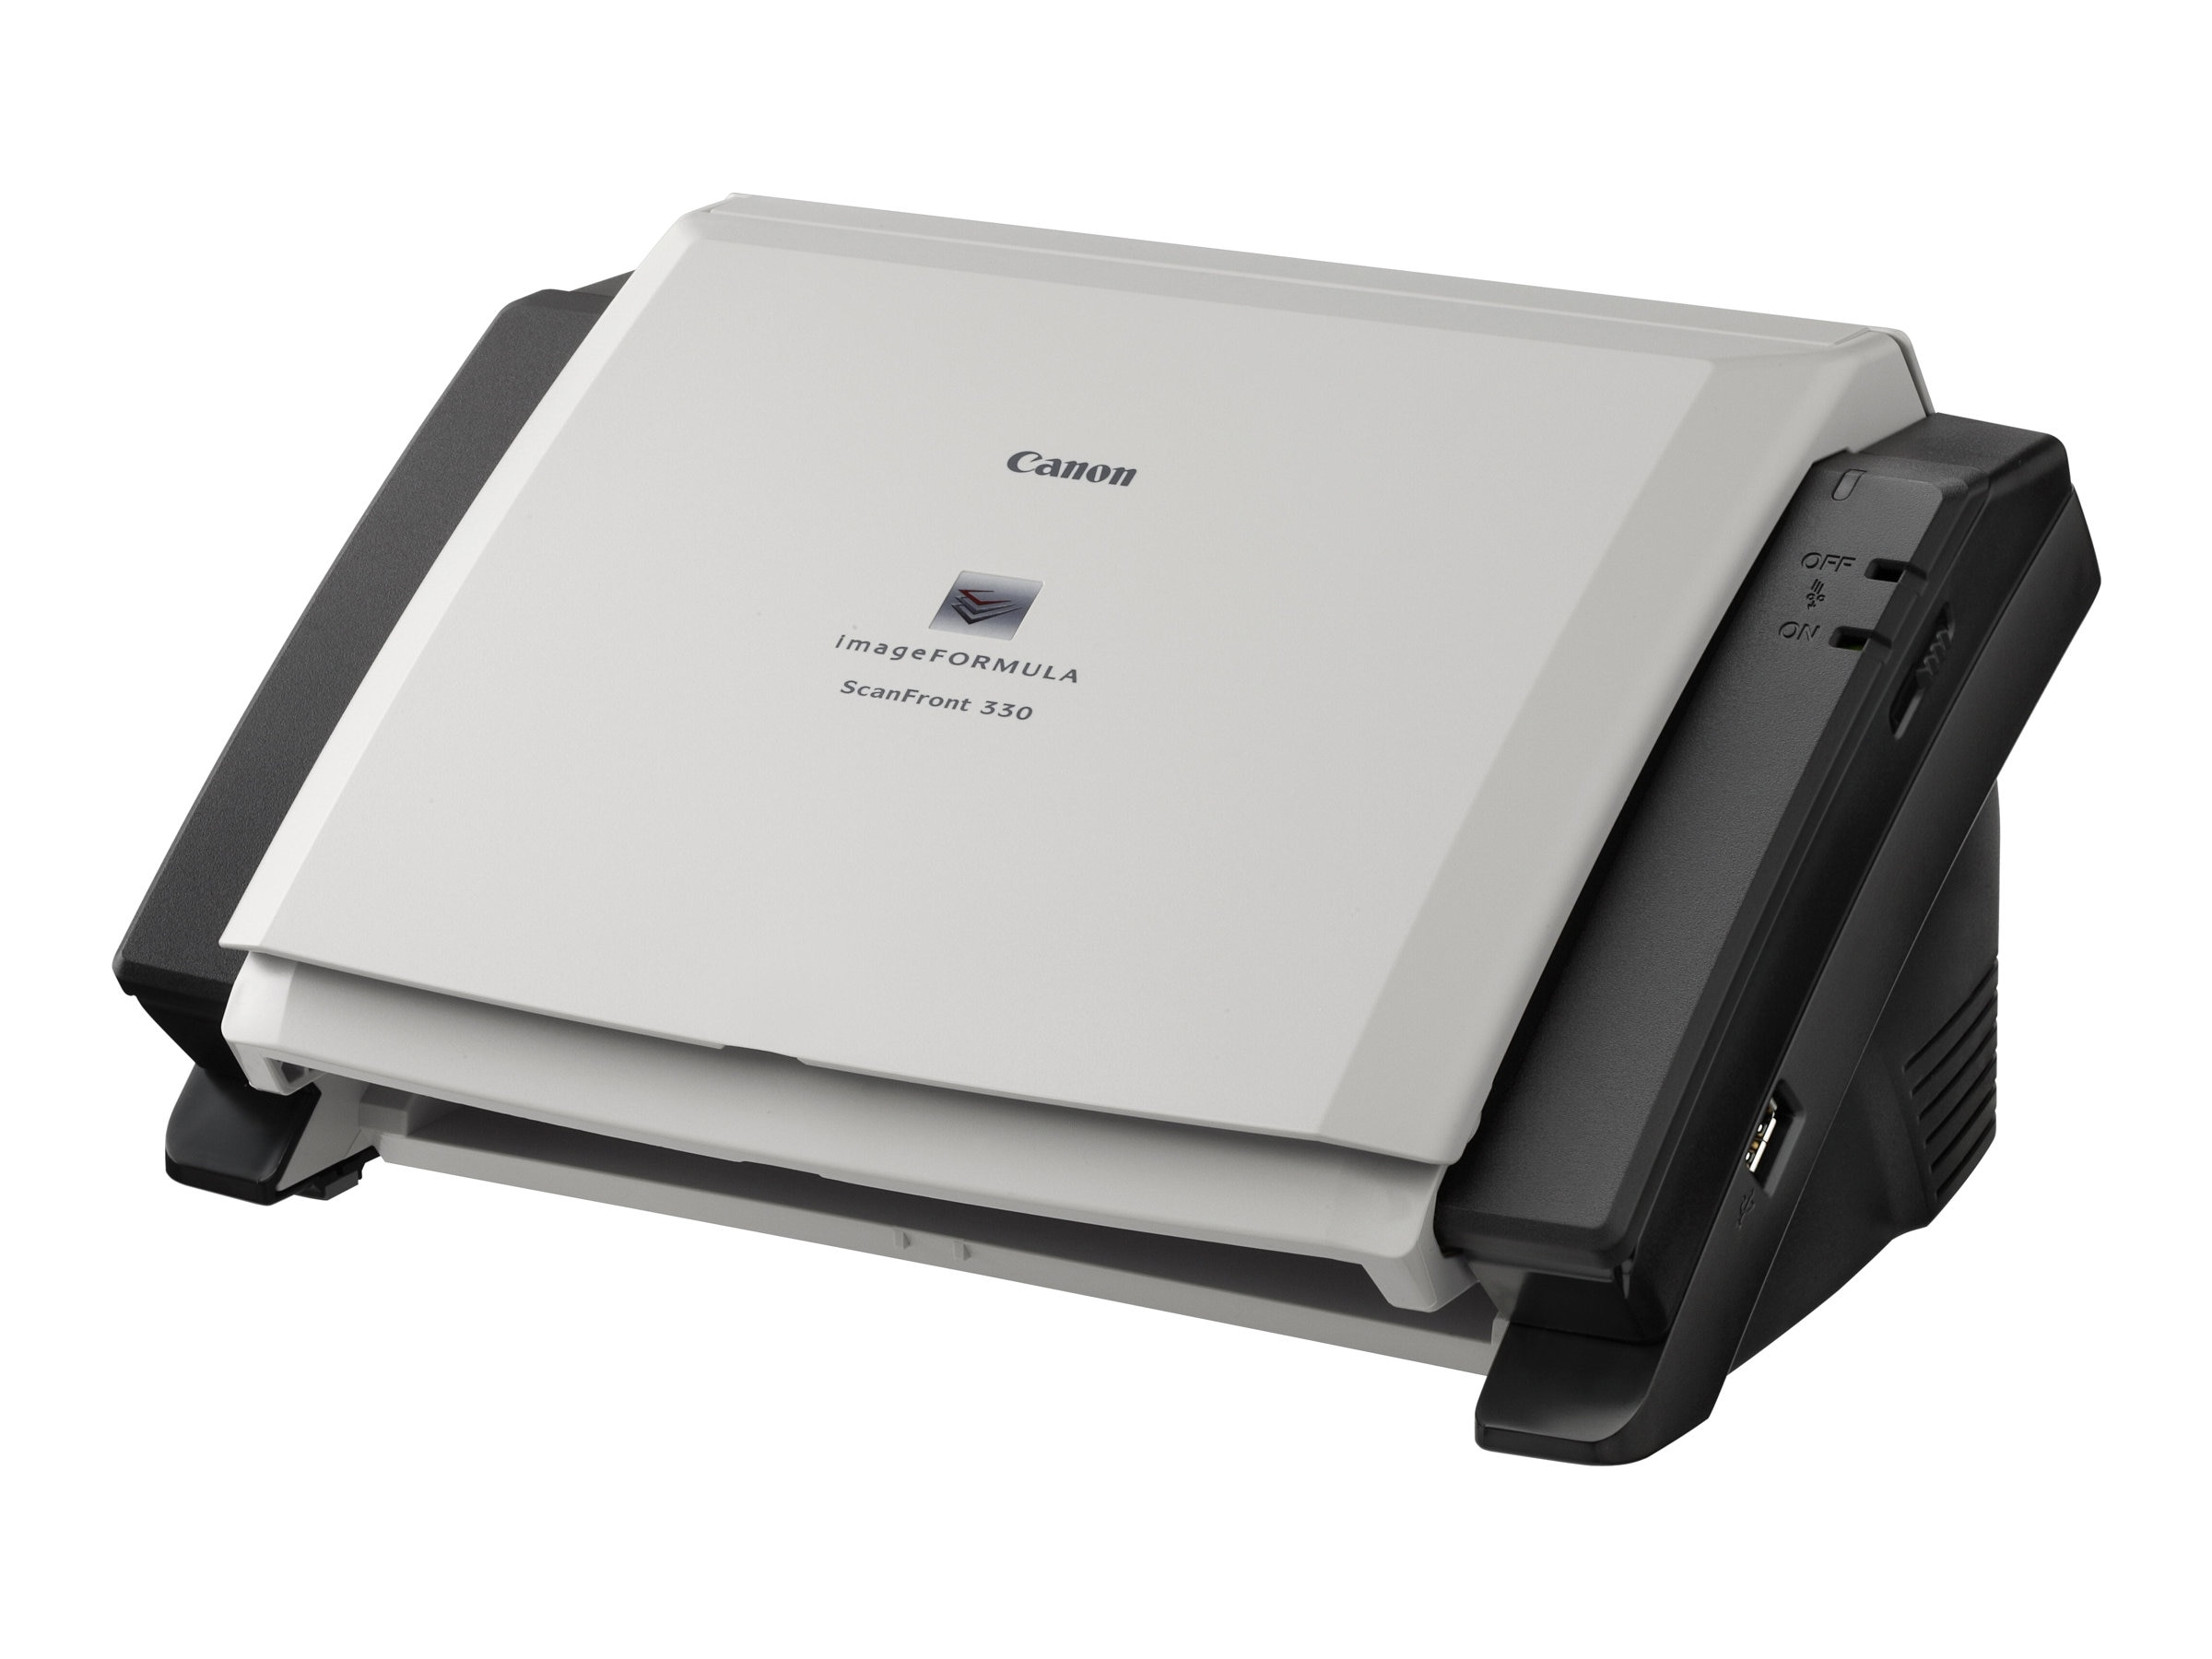 Canon imageFORMULA ScanFront 330 Sheetfed 24-bit Color 600dpi USB Network Scanner, 8683B002, 17234815, Scanners